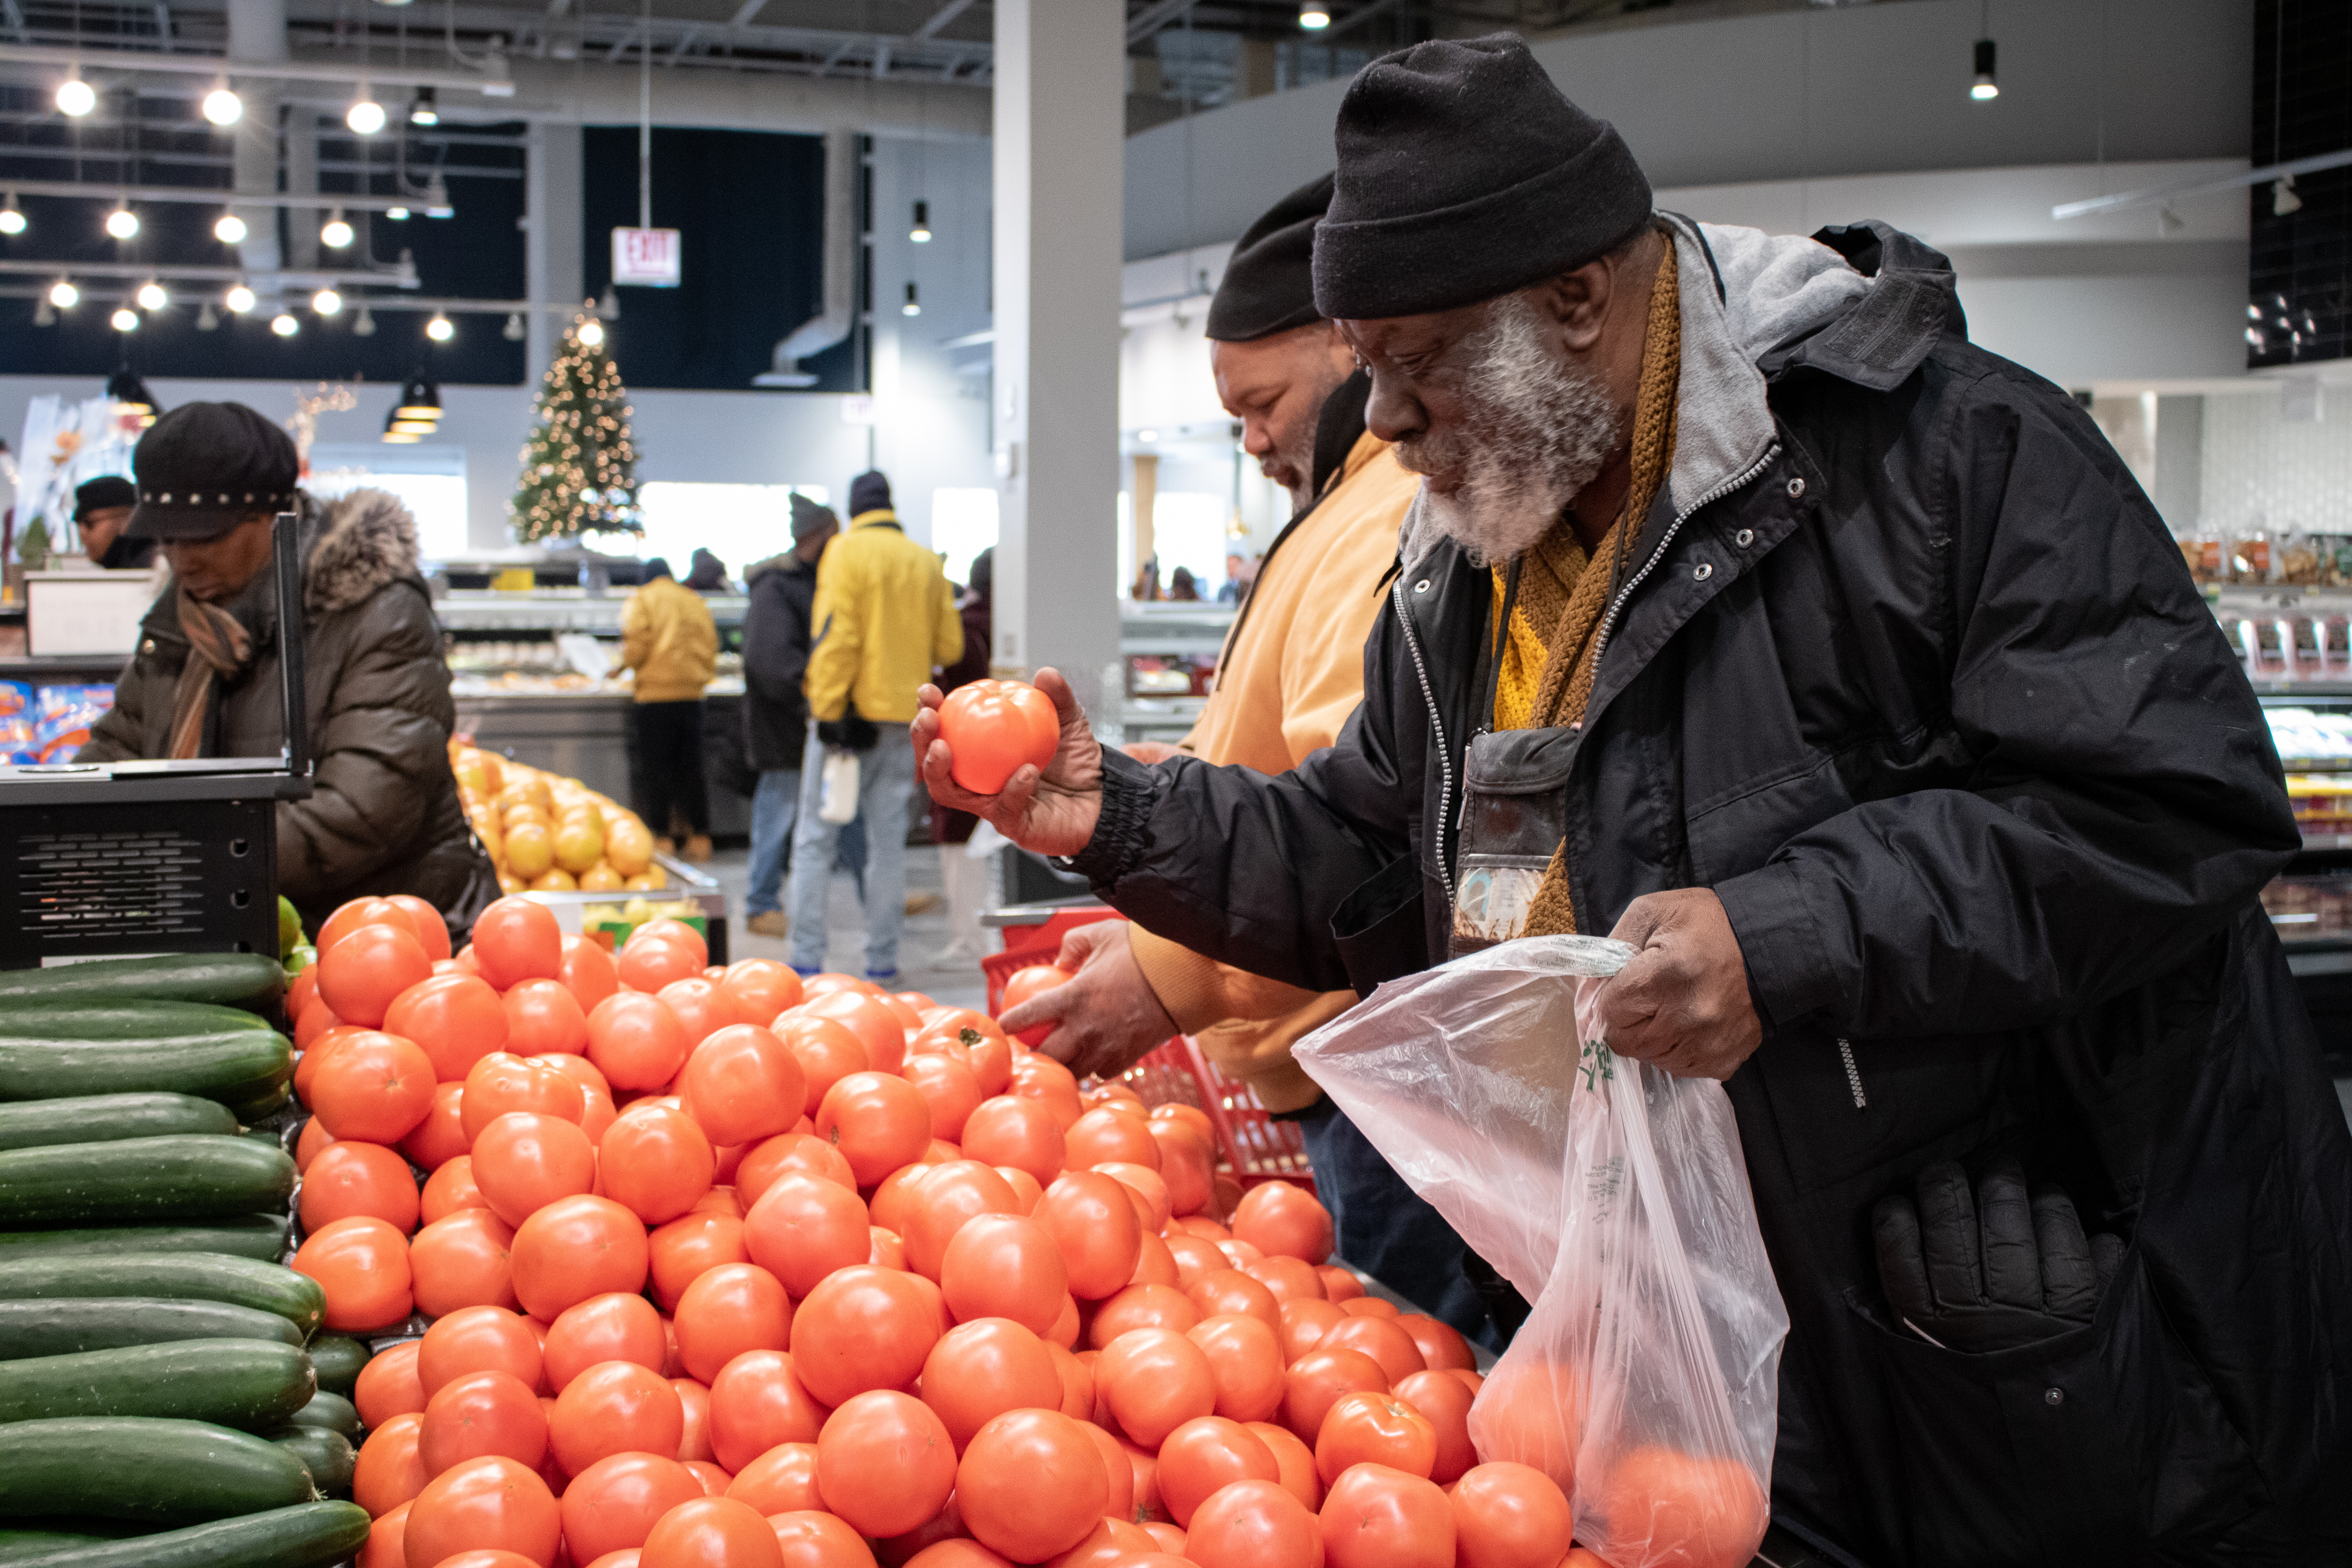 William Chatman shops for produce during the grand opening of Local Market in South Shore.